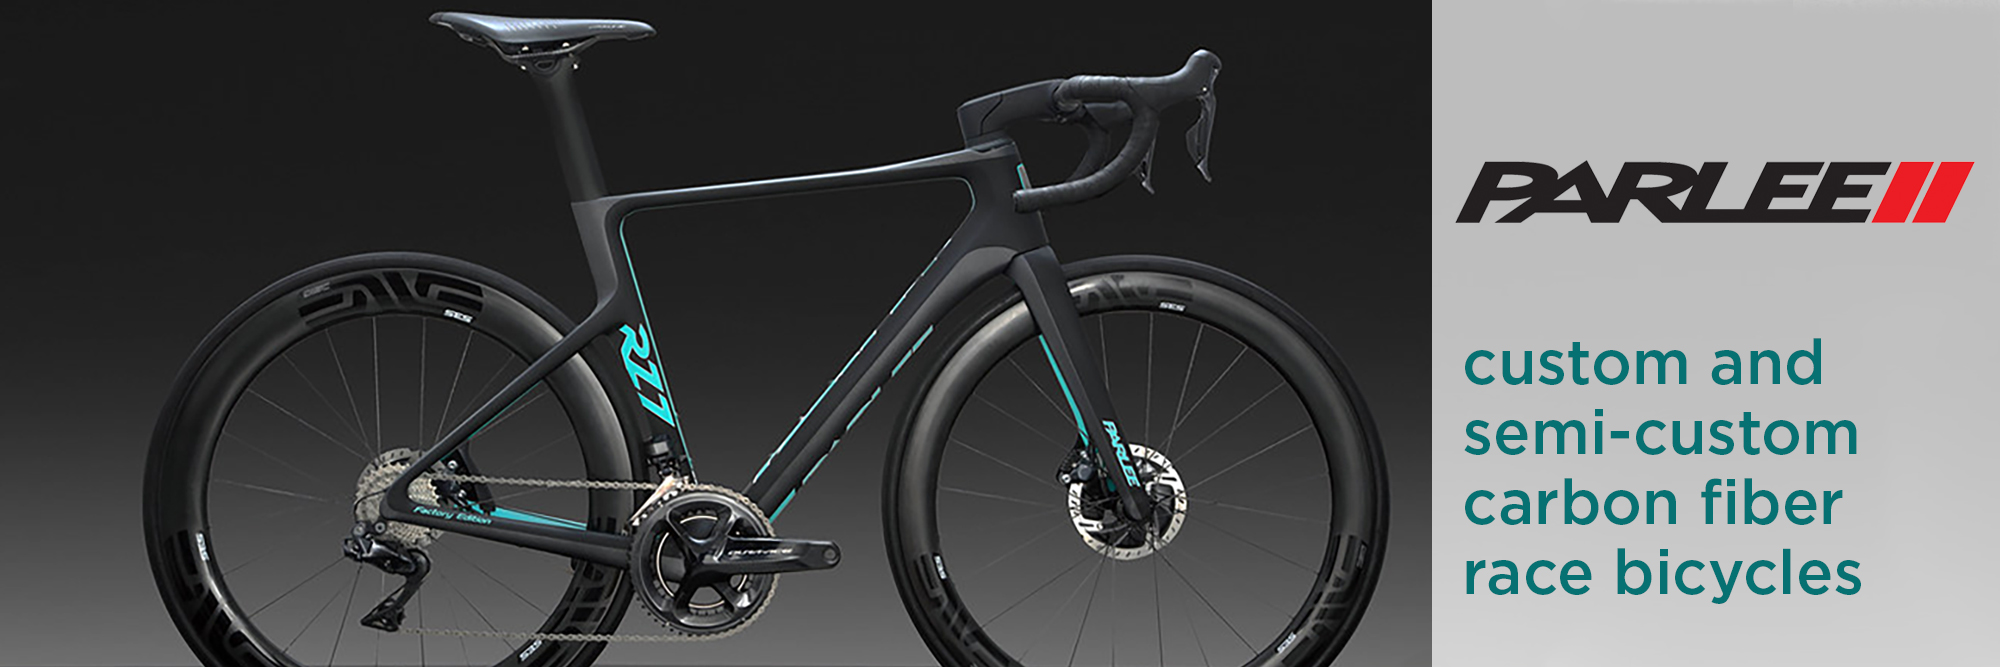 Parlee Cycles